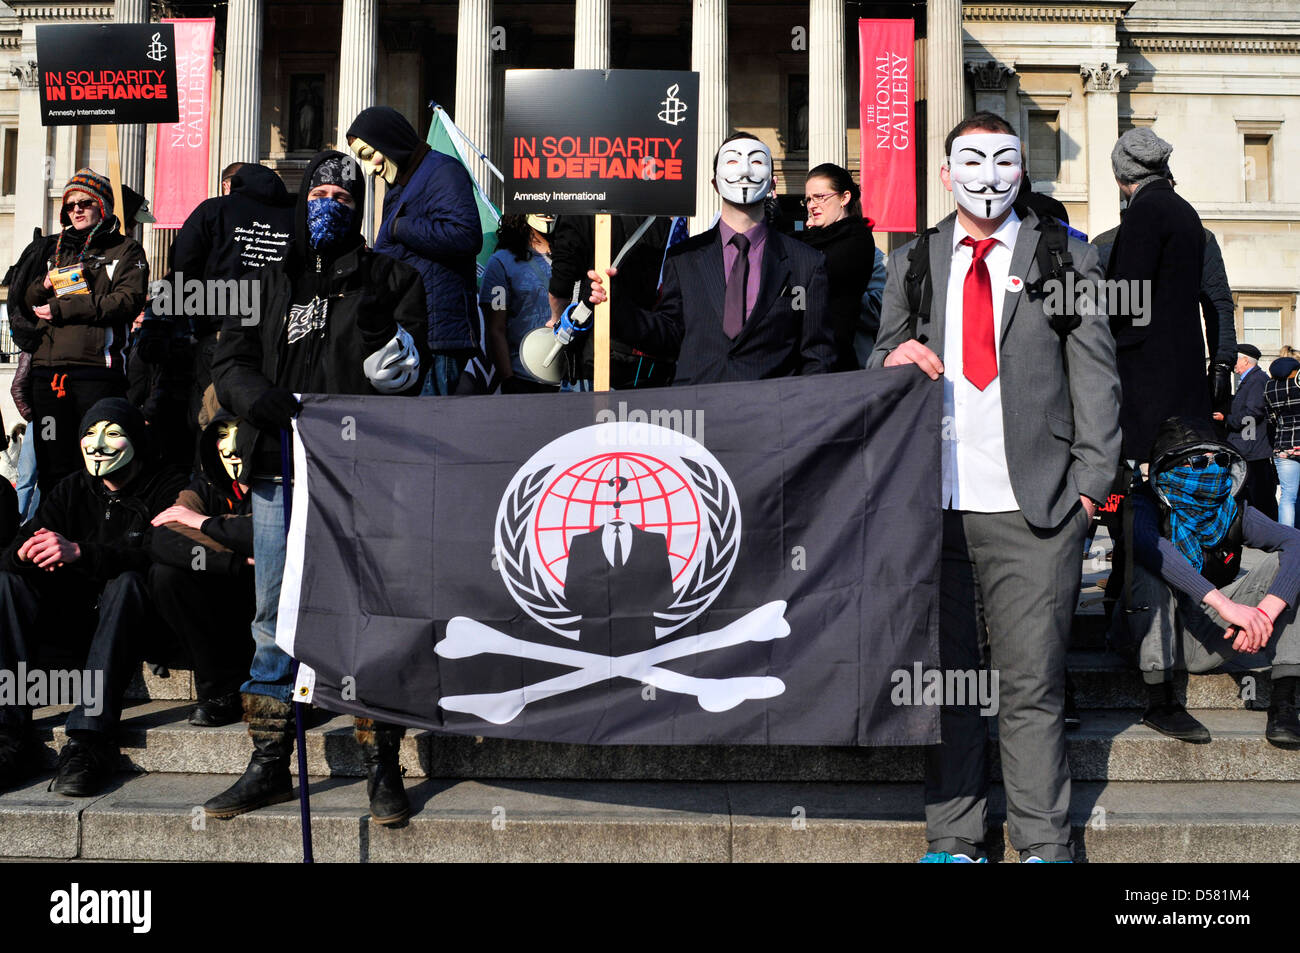 A group of protesters, some of them wearing anonymous masks at a rally in Trafalgar Square, London, UK. - Stock Image